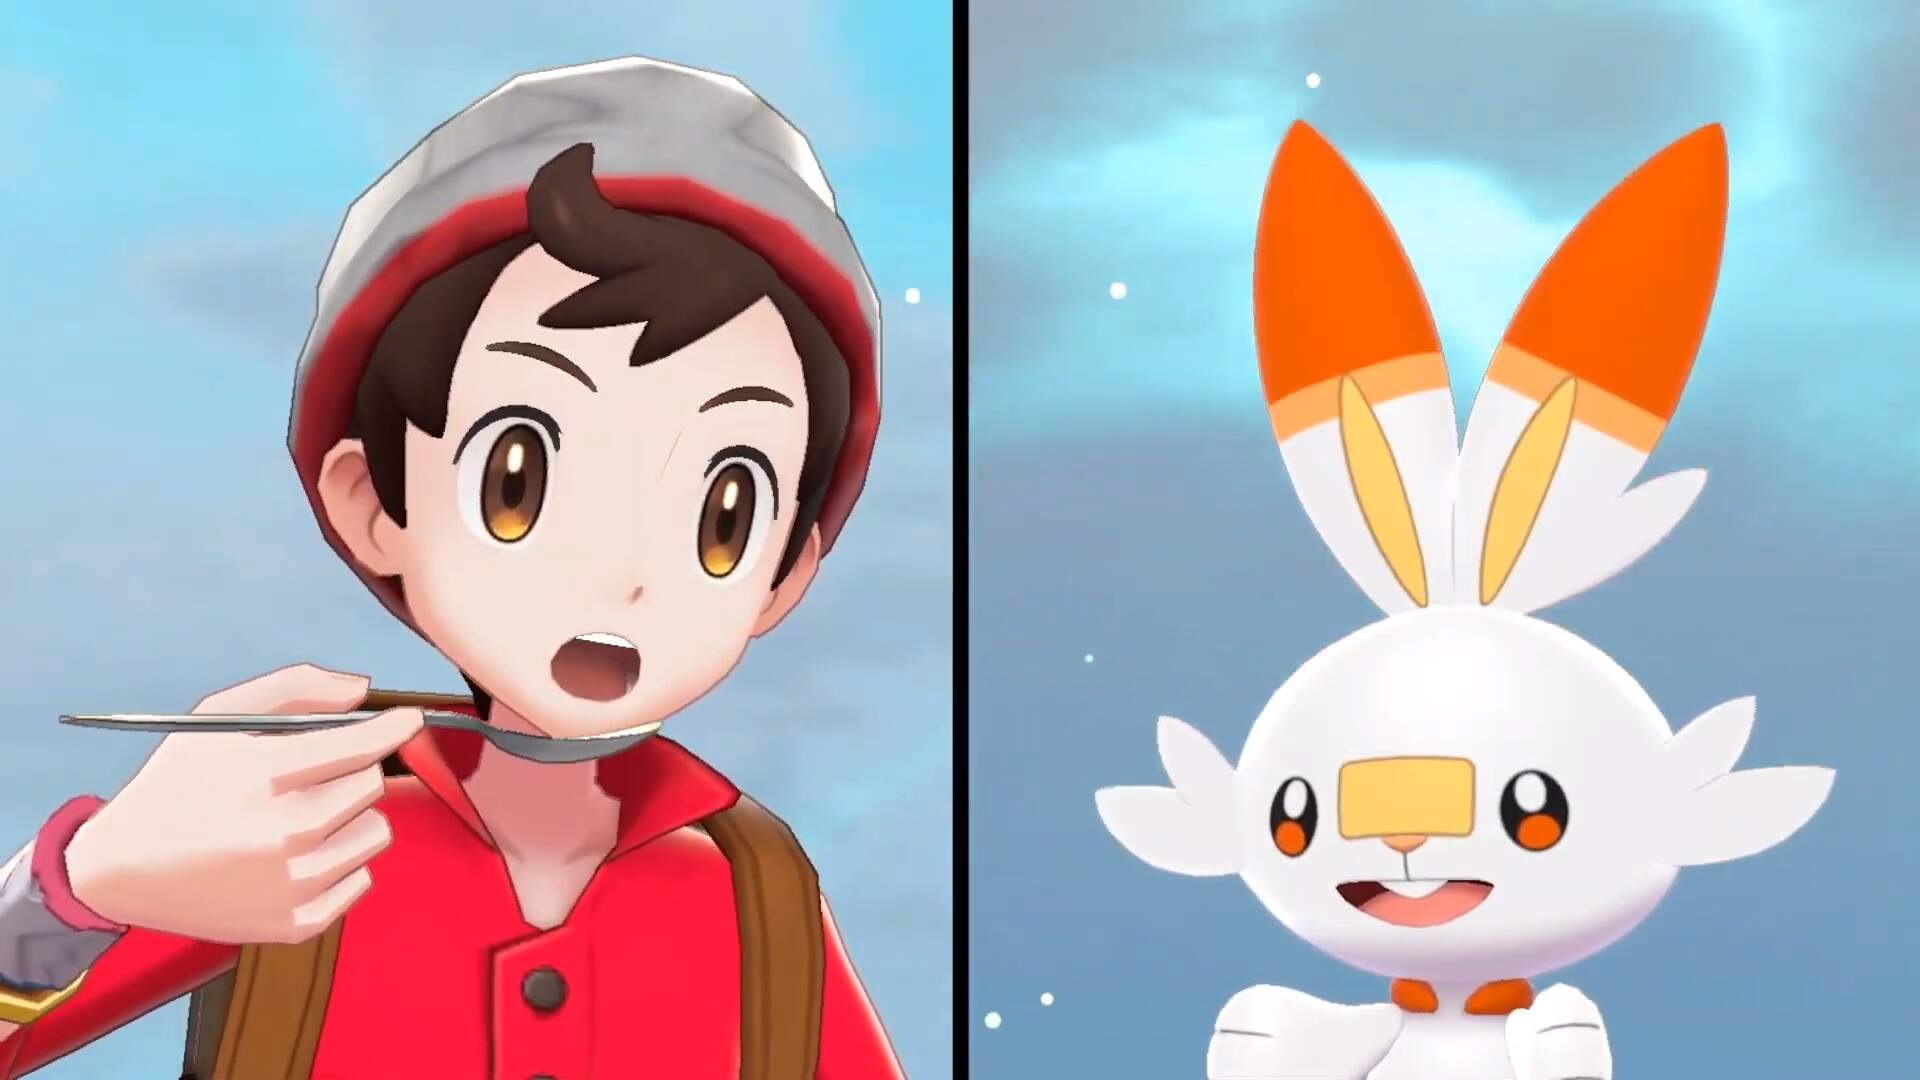 Pokemon Sword and Shield is a Top Five Best-Selling Switch Game With 16 Million Sales